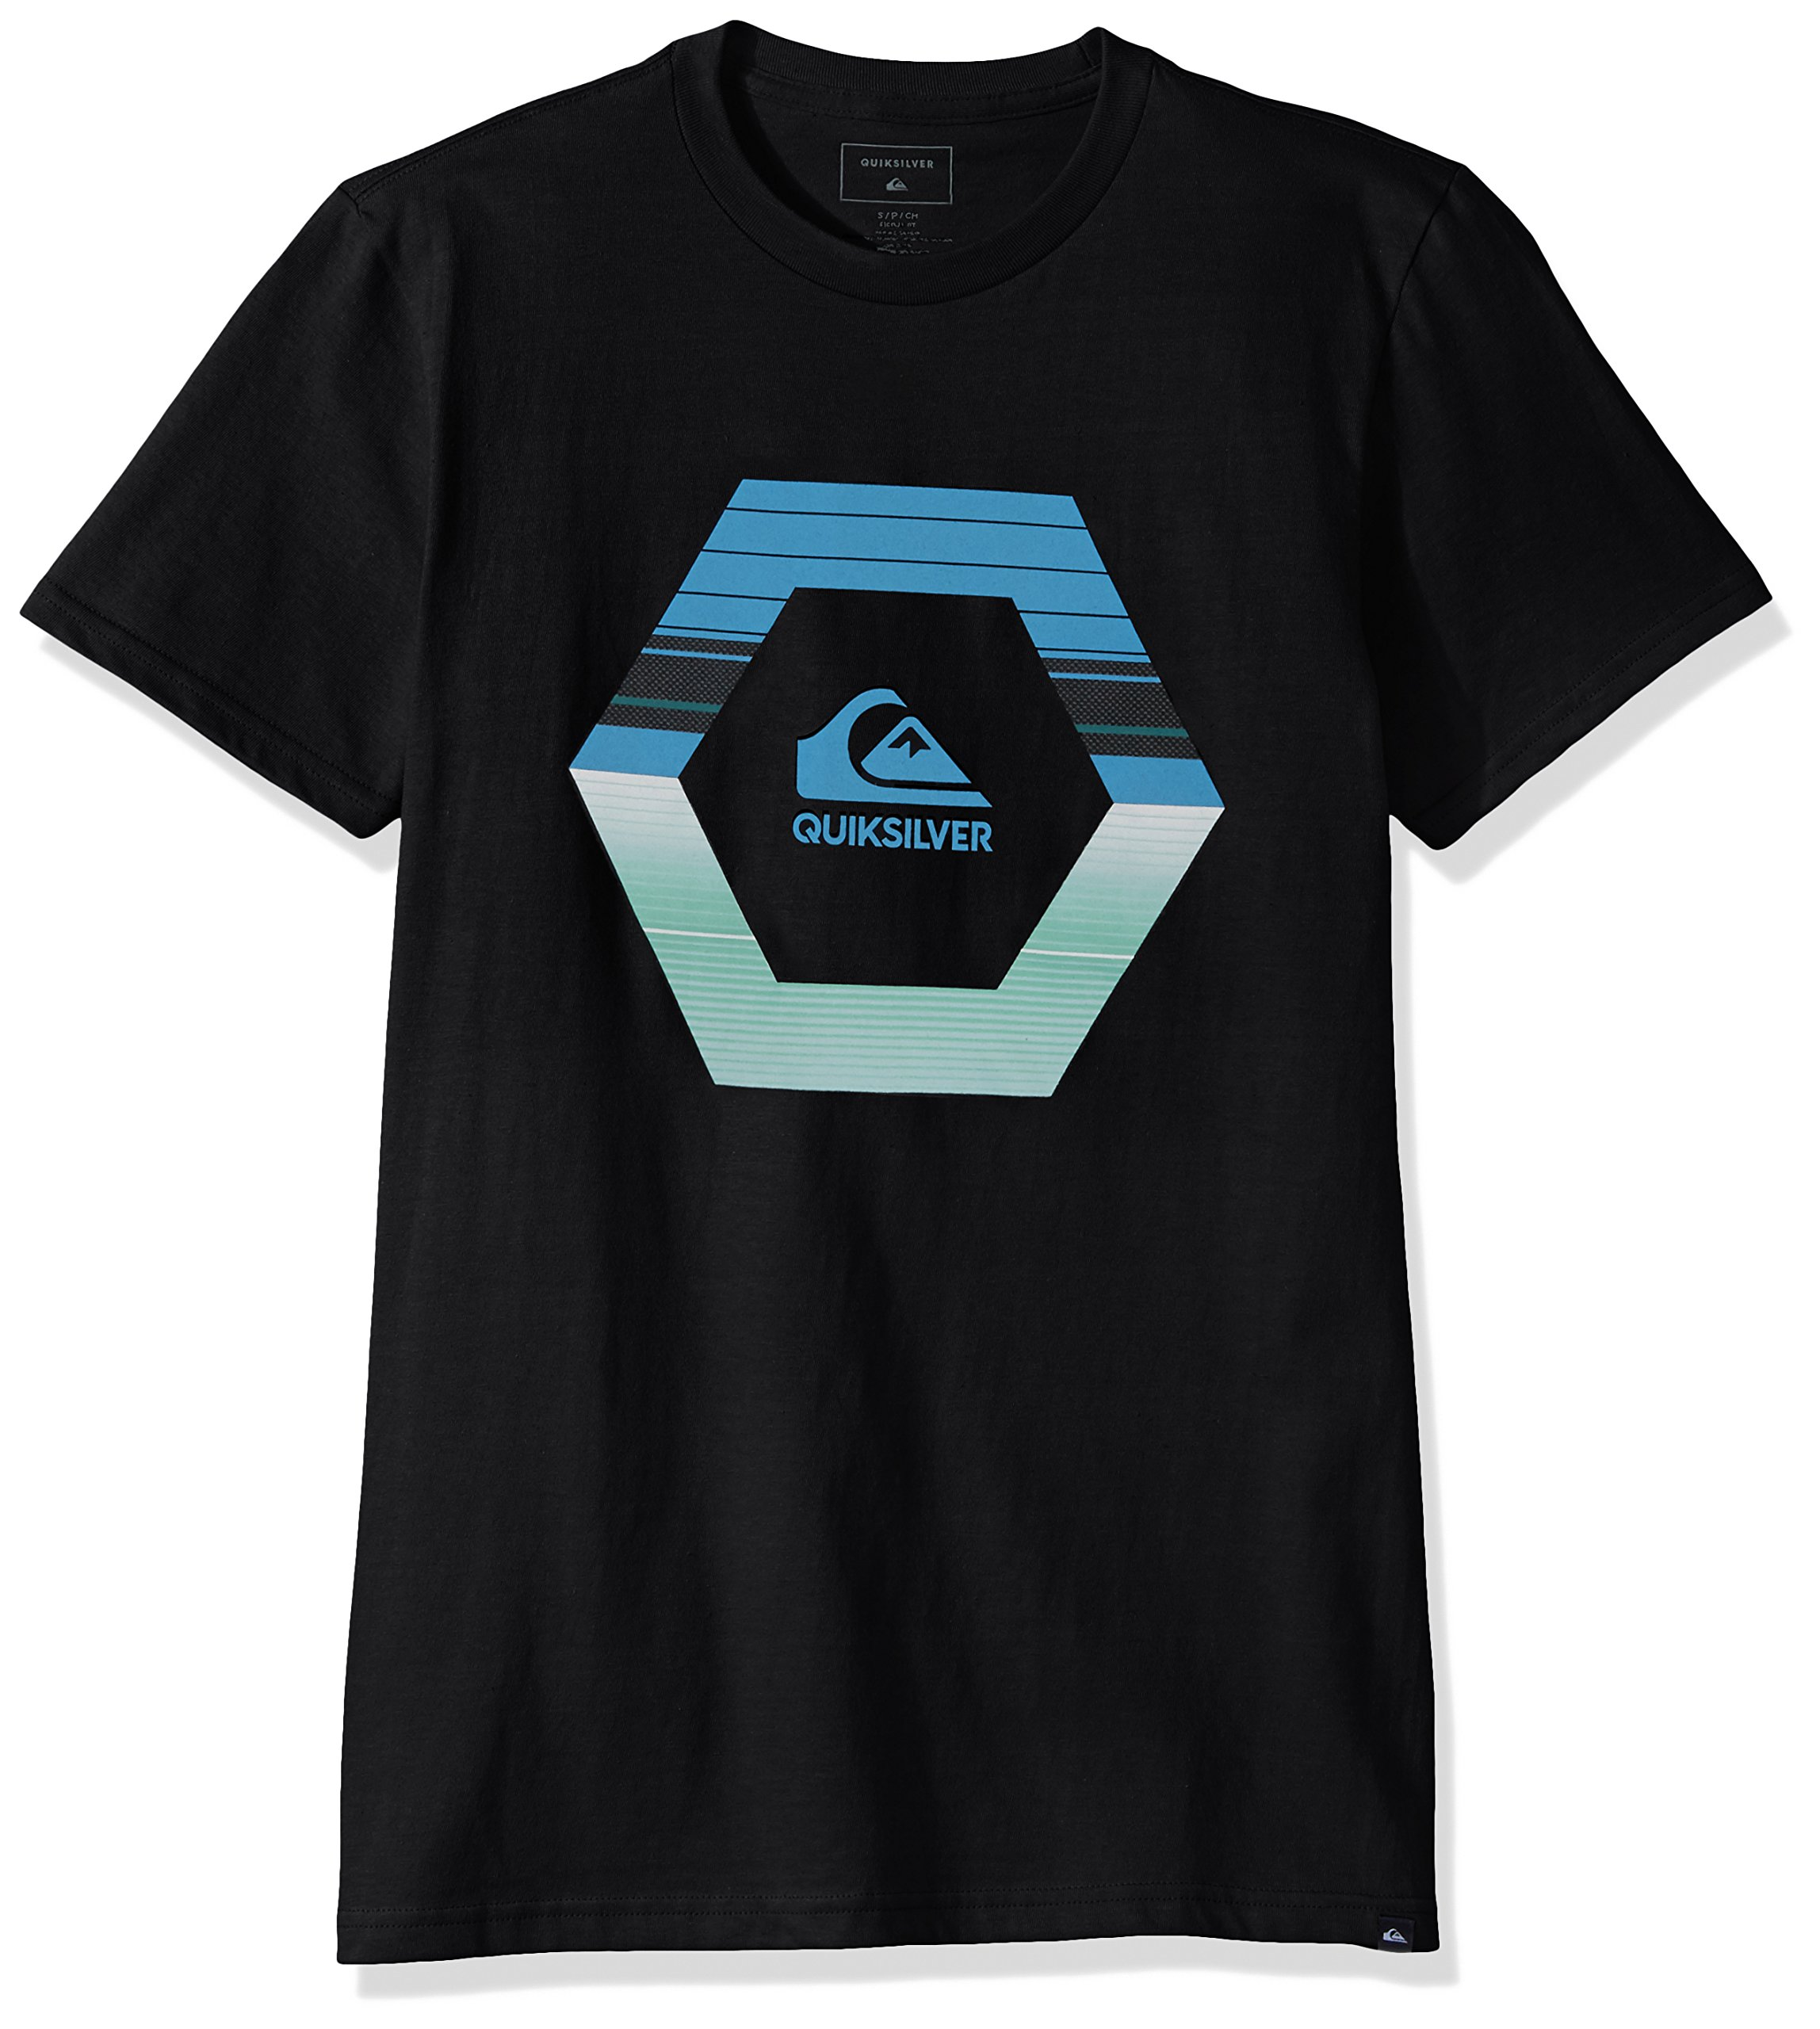 Quiksilver Men's Astral Travel Tee, Black, S by Quiksilver (Image #1)